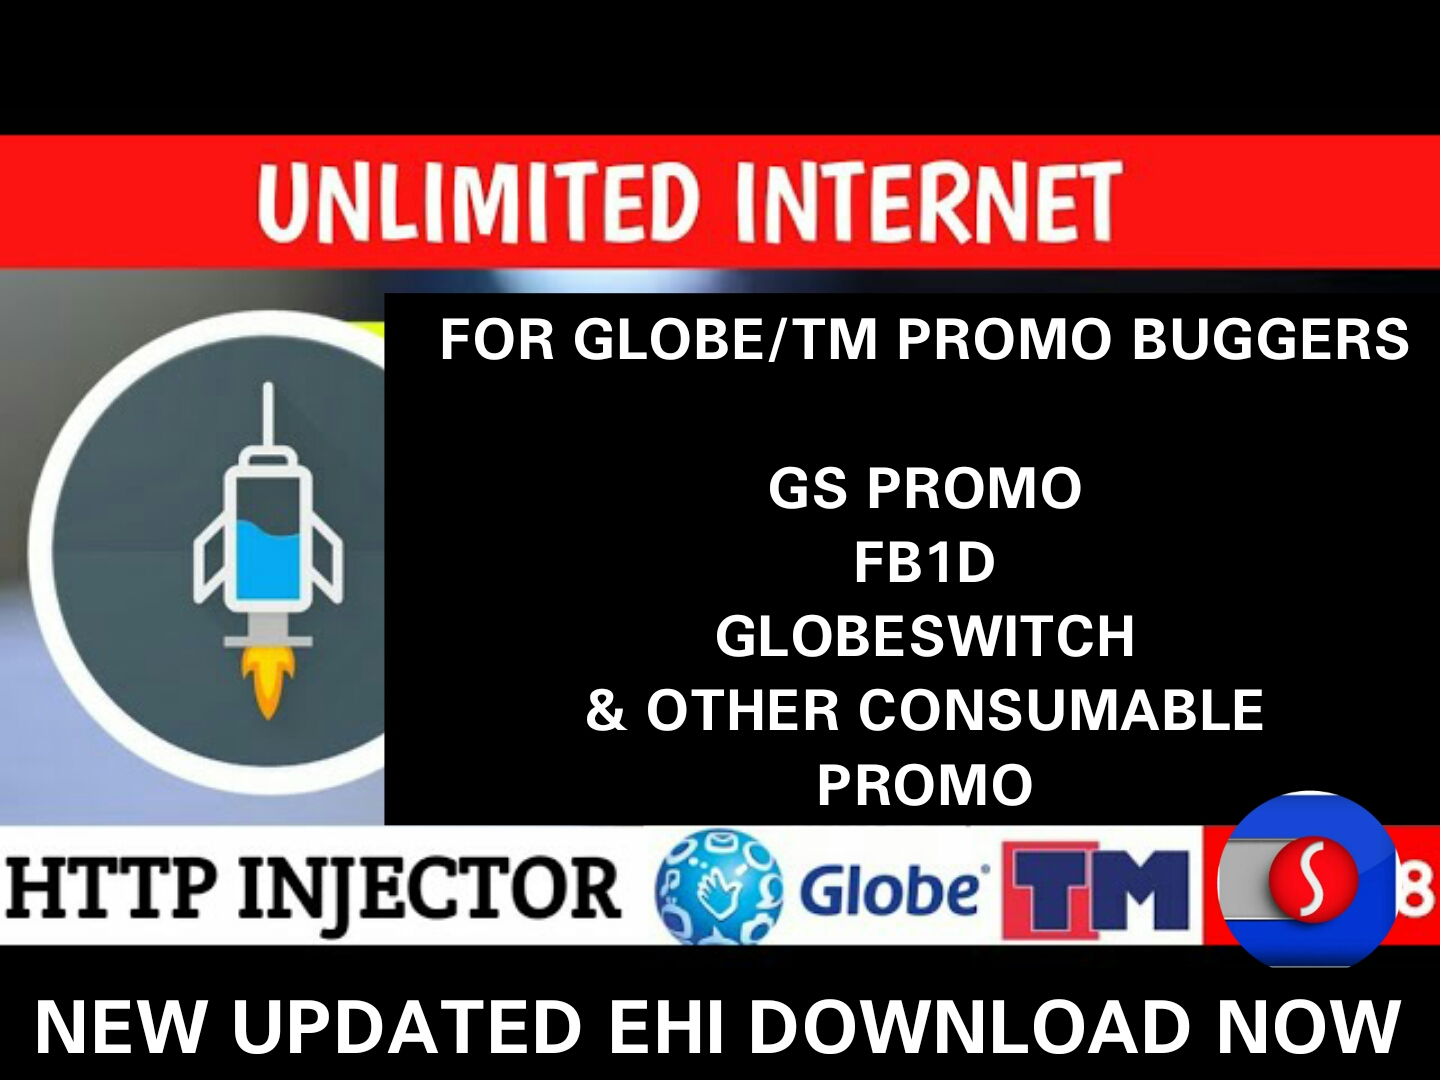 Globe & TM New Ehi Promo BUG Unlimited Internet January 29